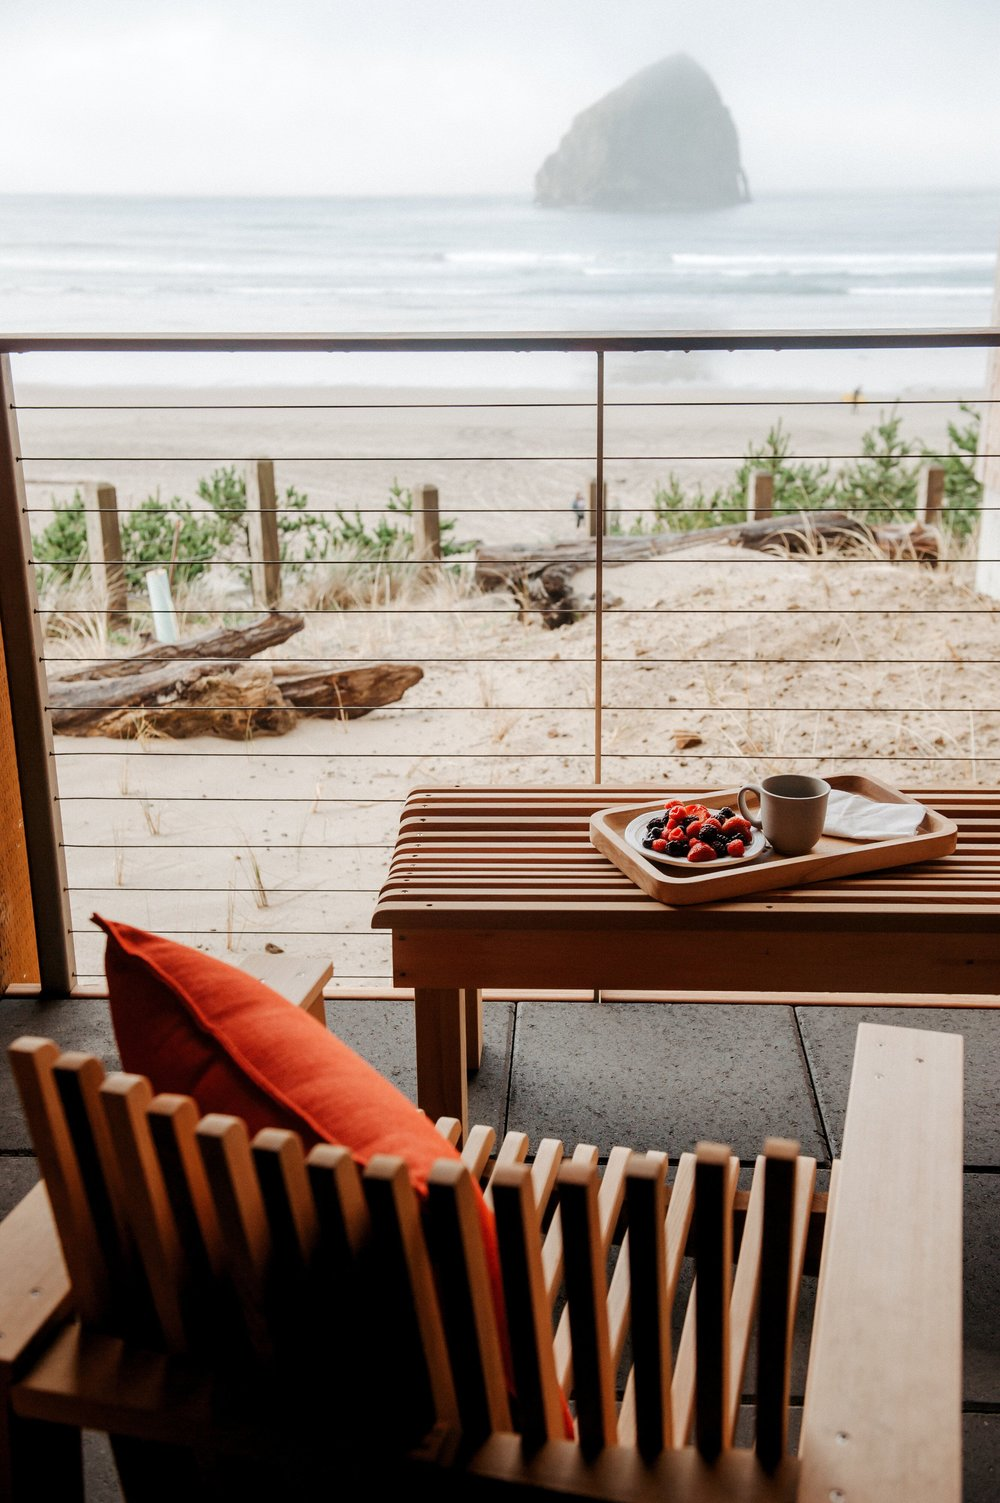 Win a trip for two to stay at the Headlands Coastal Lodge & Spa - in Pacific City, Oregon, just two hours outside of Portland.